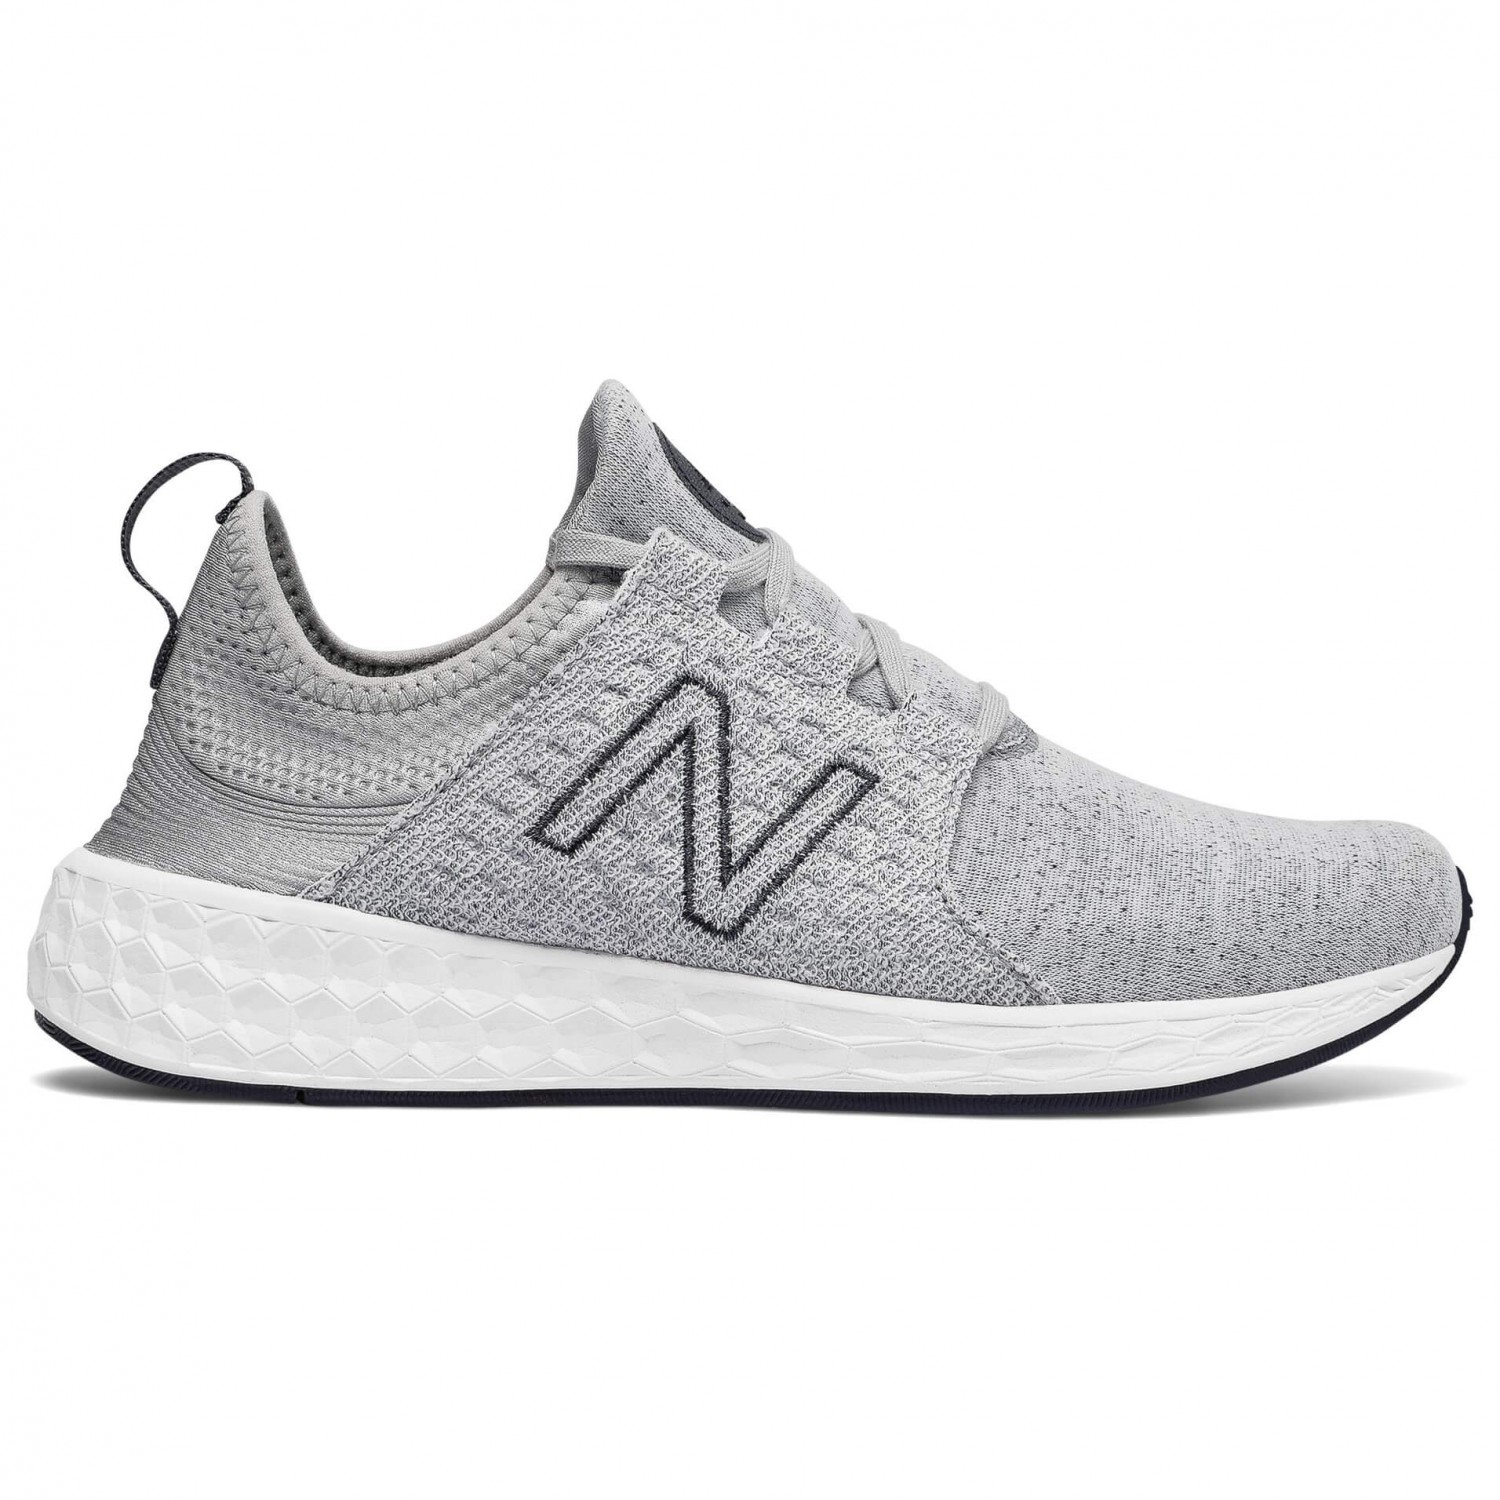 New Balance Fresh Foam Cruz - Sneakers Women s  997f6189a